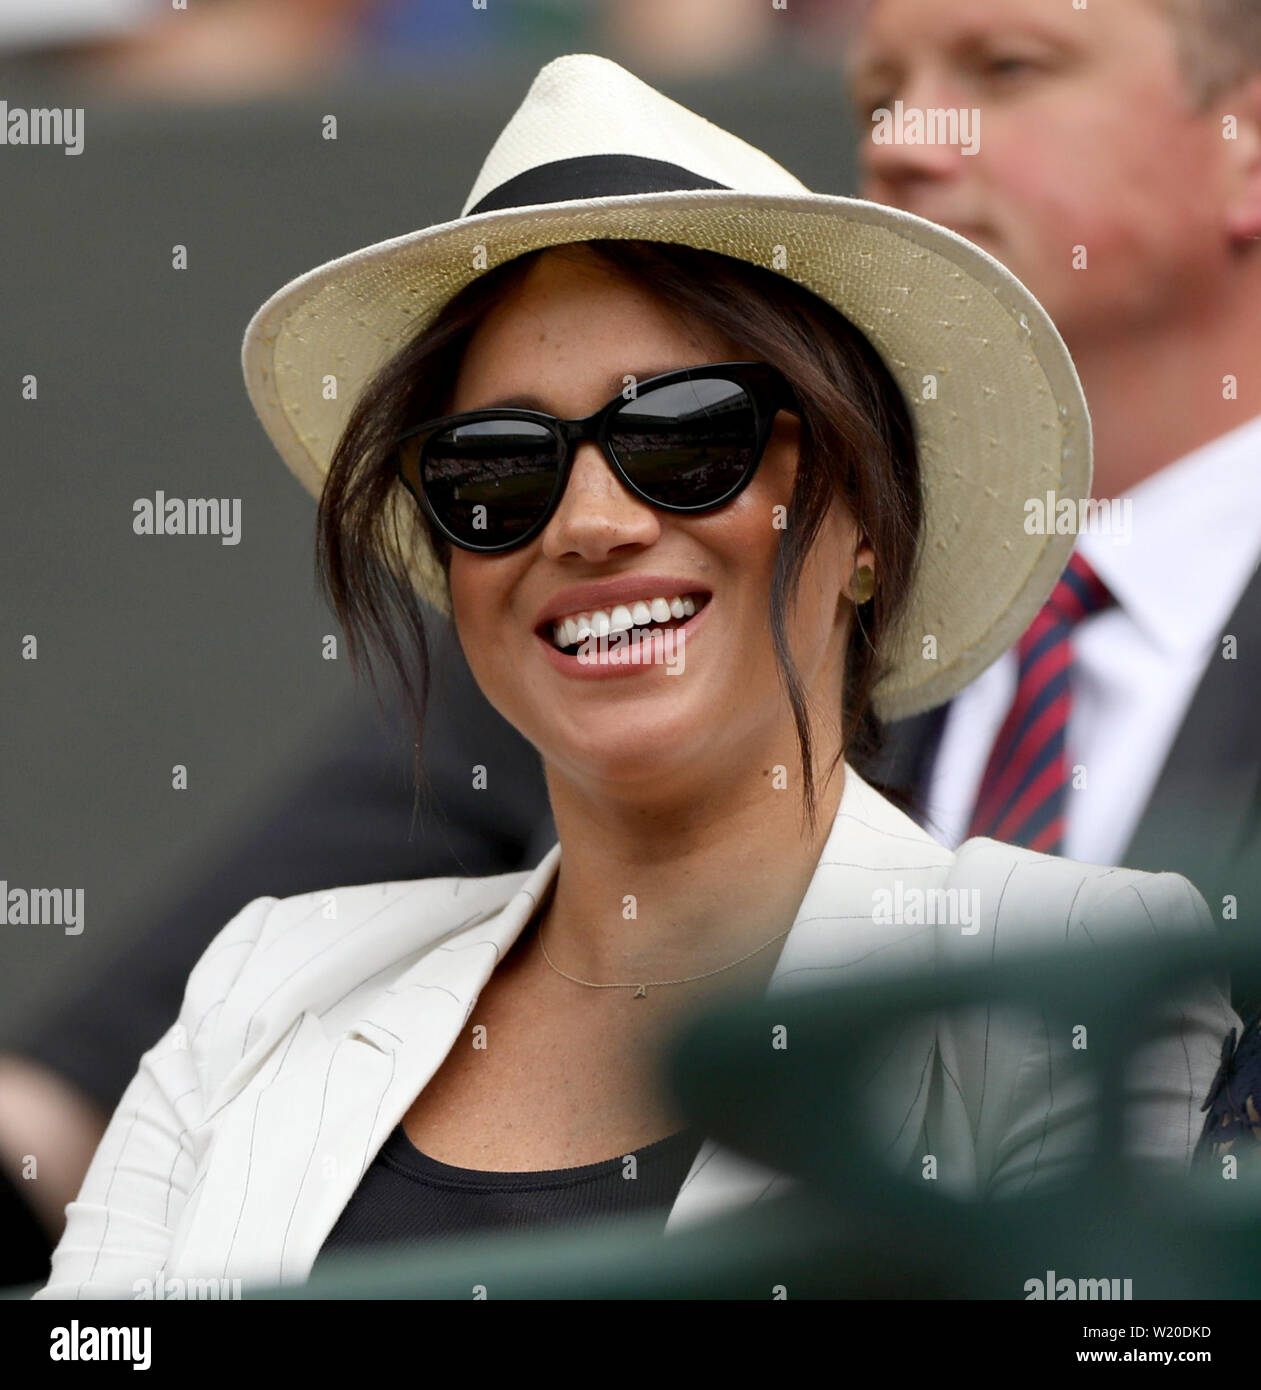 London, UK. 04th July, 2019. LONDON, ENGLAND - JULY 04: Meghan, Duchess of Sussex attends day four of the Wimbledon Tennis Championships at All England Lawn Tennis and Croquet Club on July 04, 2019 in London, England. People: Meghan, Duchess of Sussex Credit: Storms Media Group/Alamy Live News Stock Photo